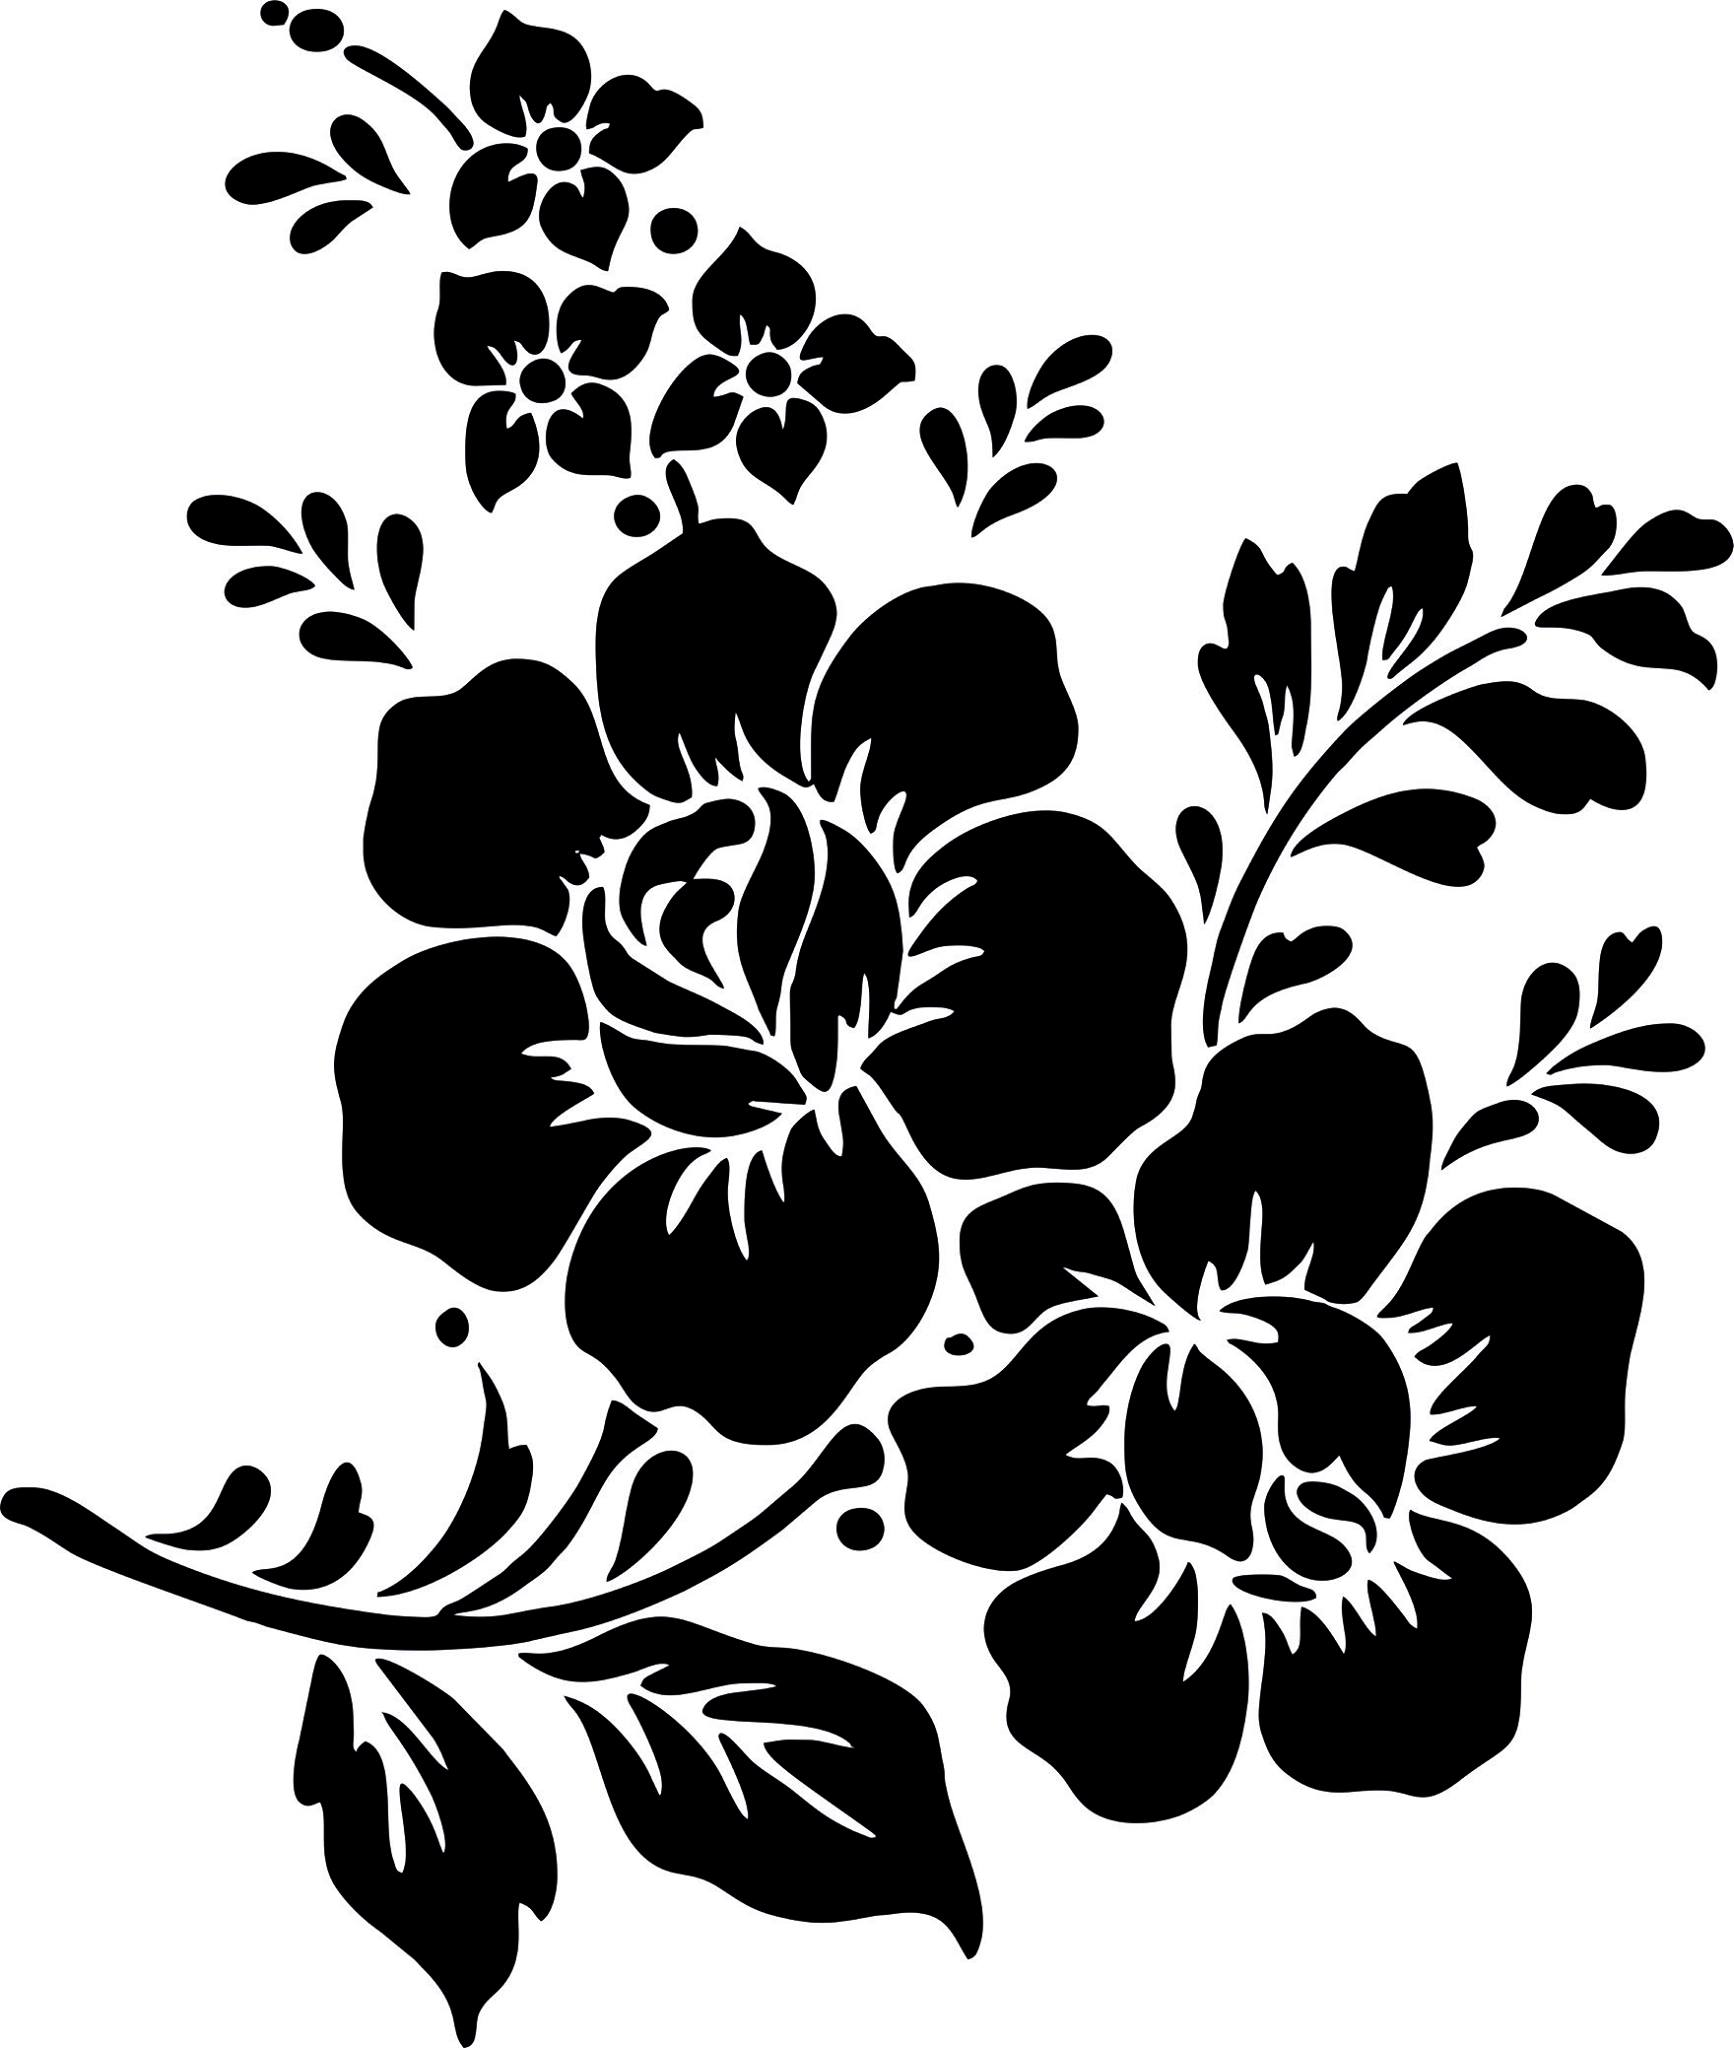 Rose Flower Vector Vector Art Image Free Download 3Axis.co